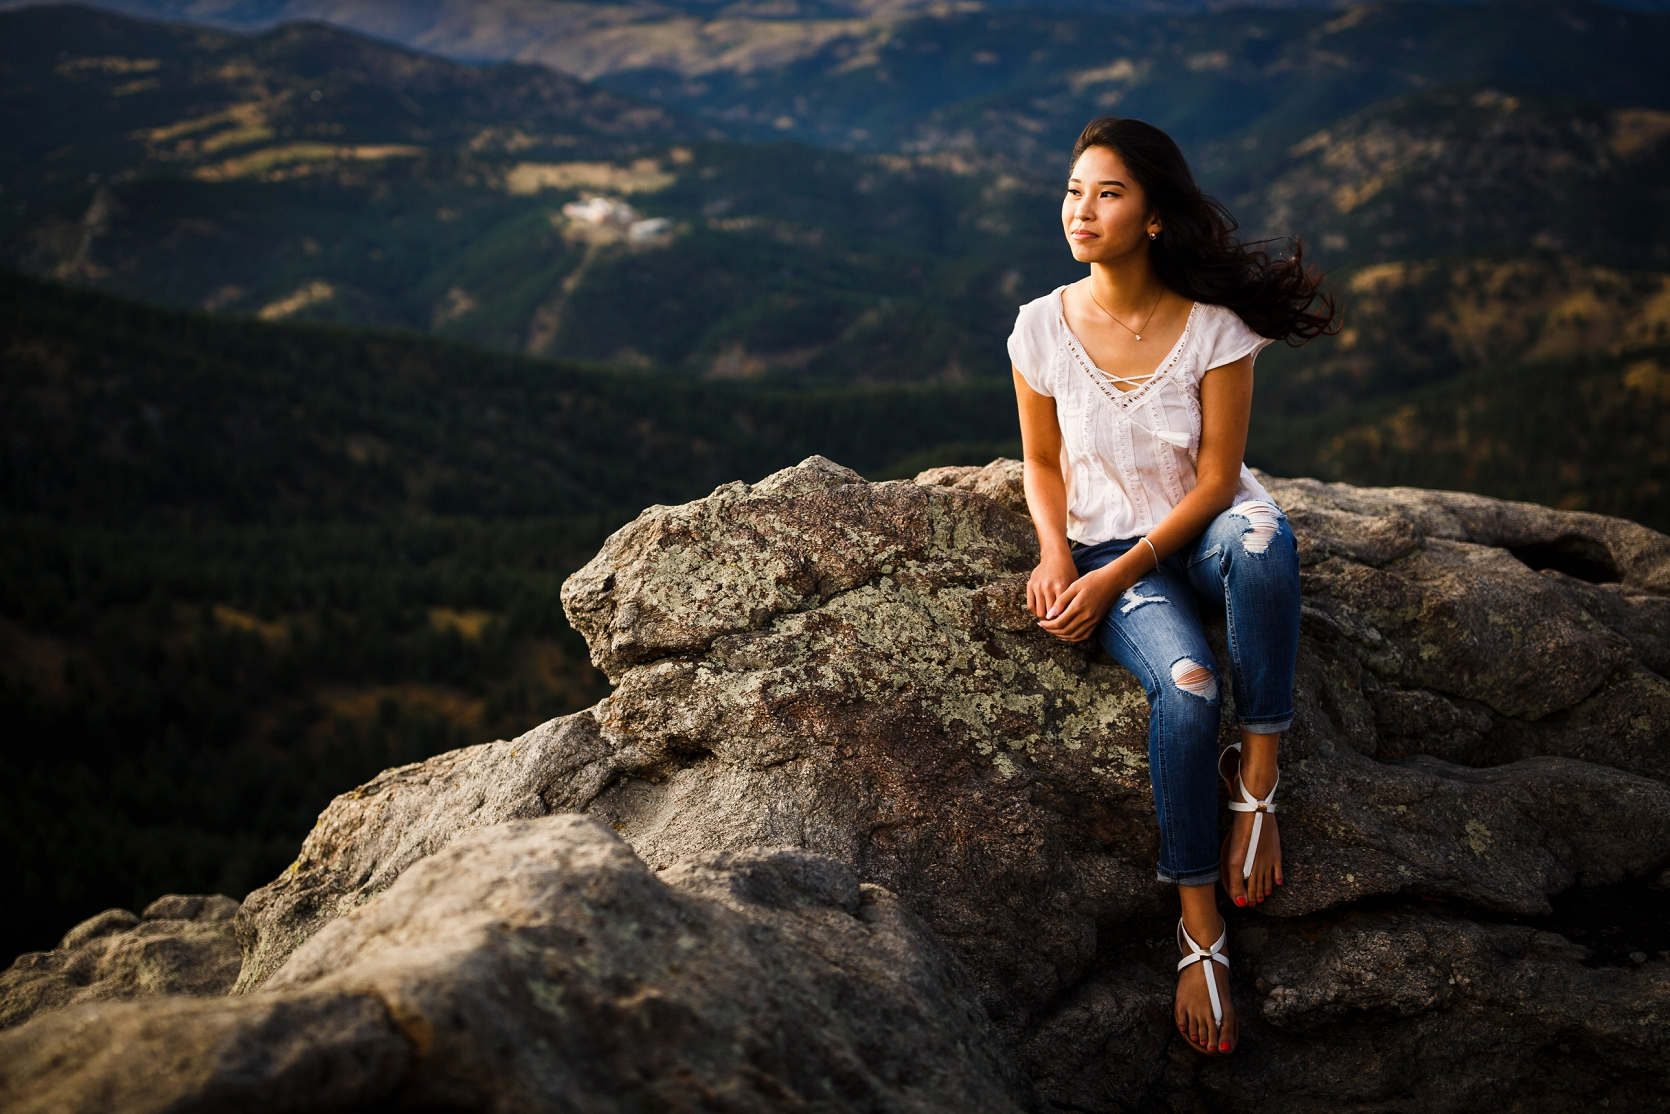 Boulder_Senior_Portrait_Session_0018b